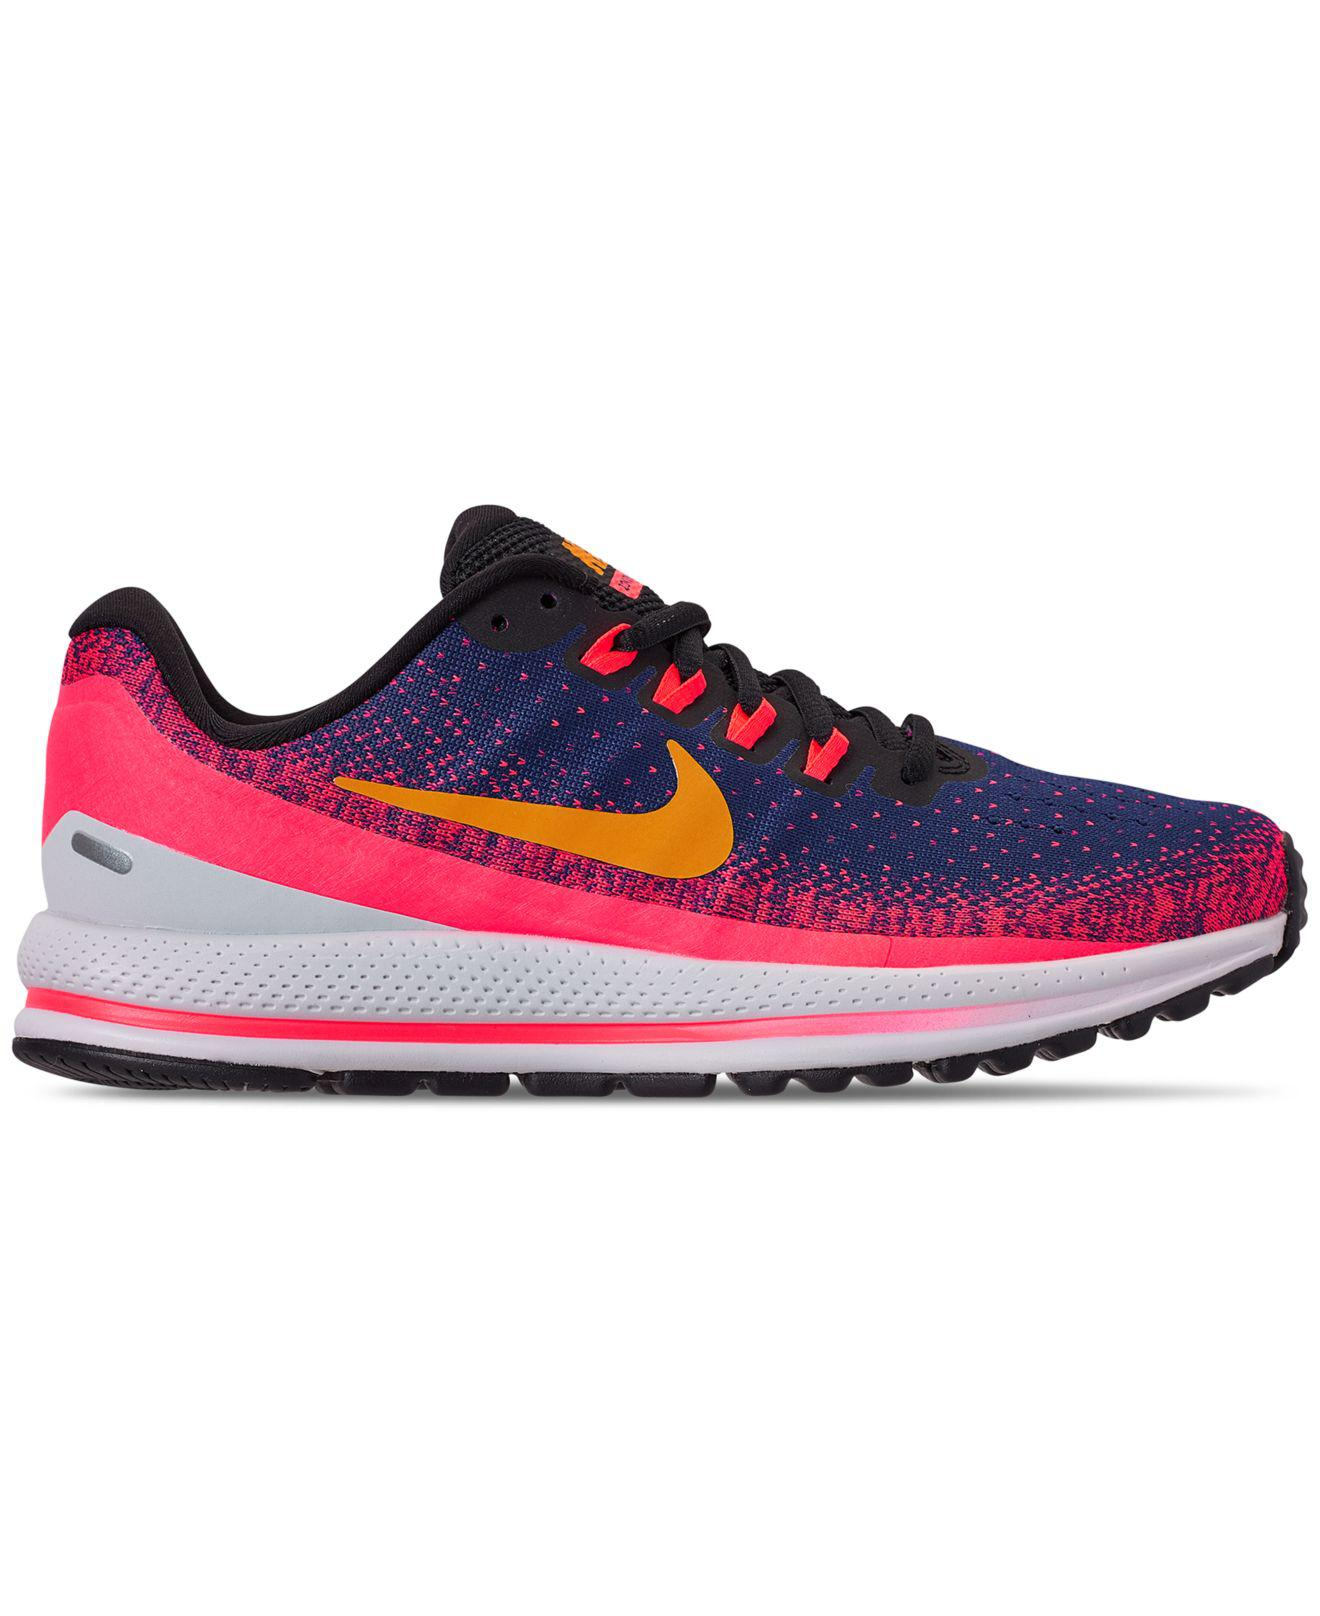 best authentic c583c 555e2 ... coupon lyst nike air zoom vomero 13 running sneakers from finish line  save 22.448979591836732 862d3 50ced